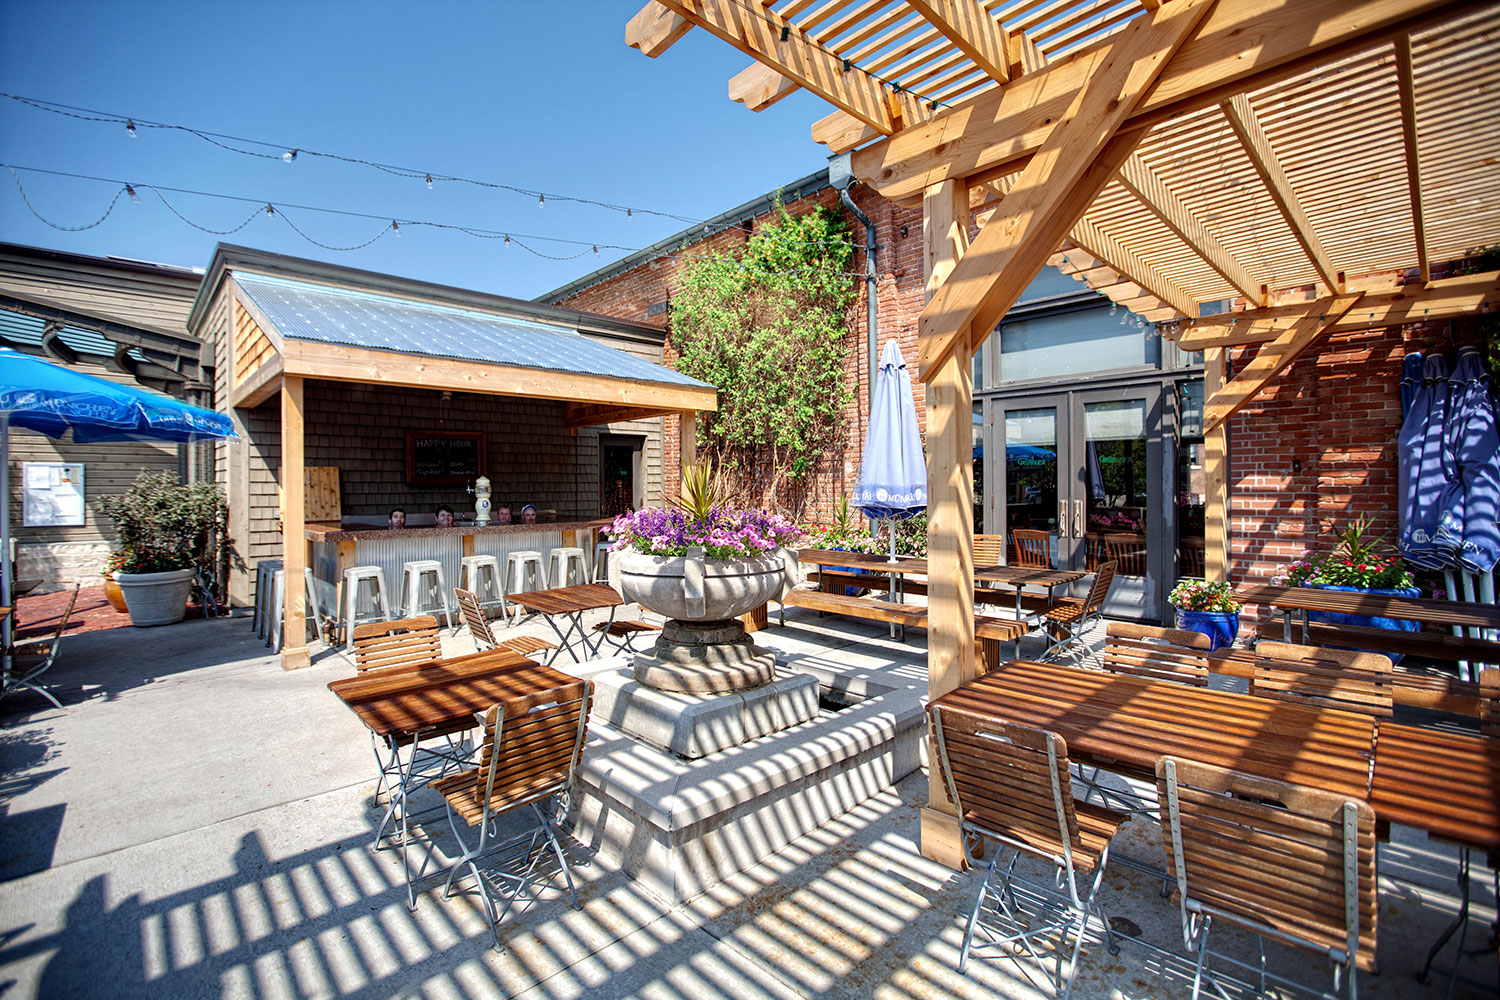 Outdoor biergarten gr nauer for Create modern home decor kansas city